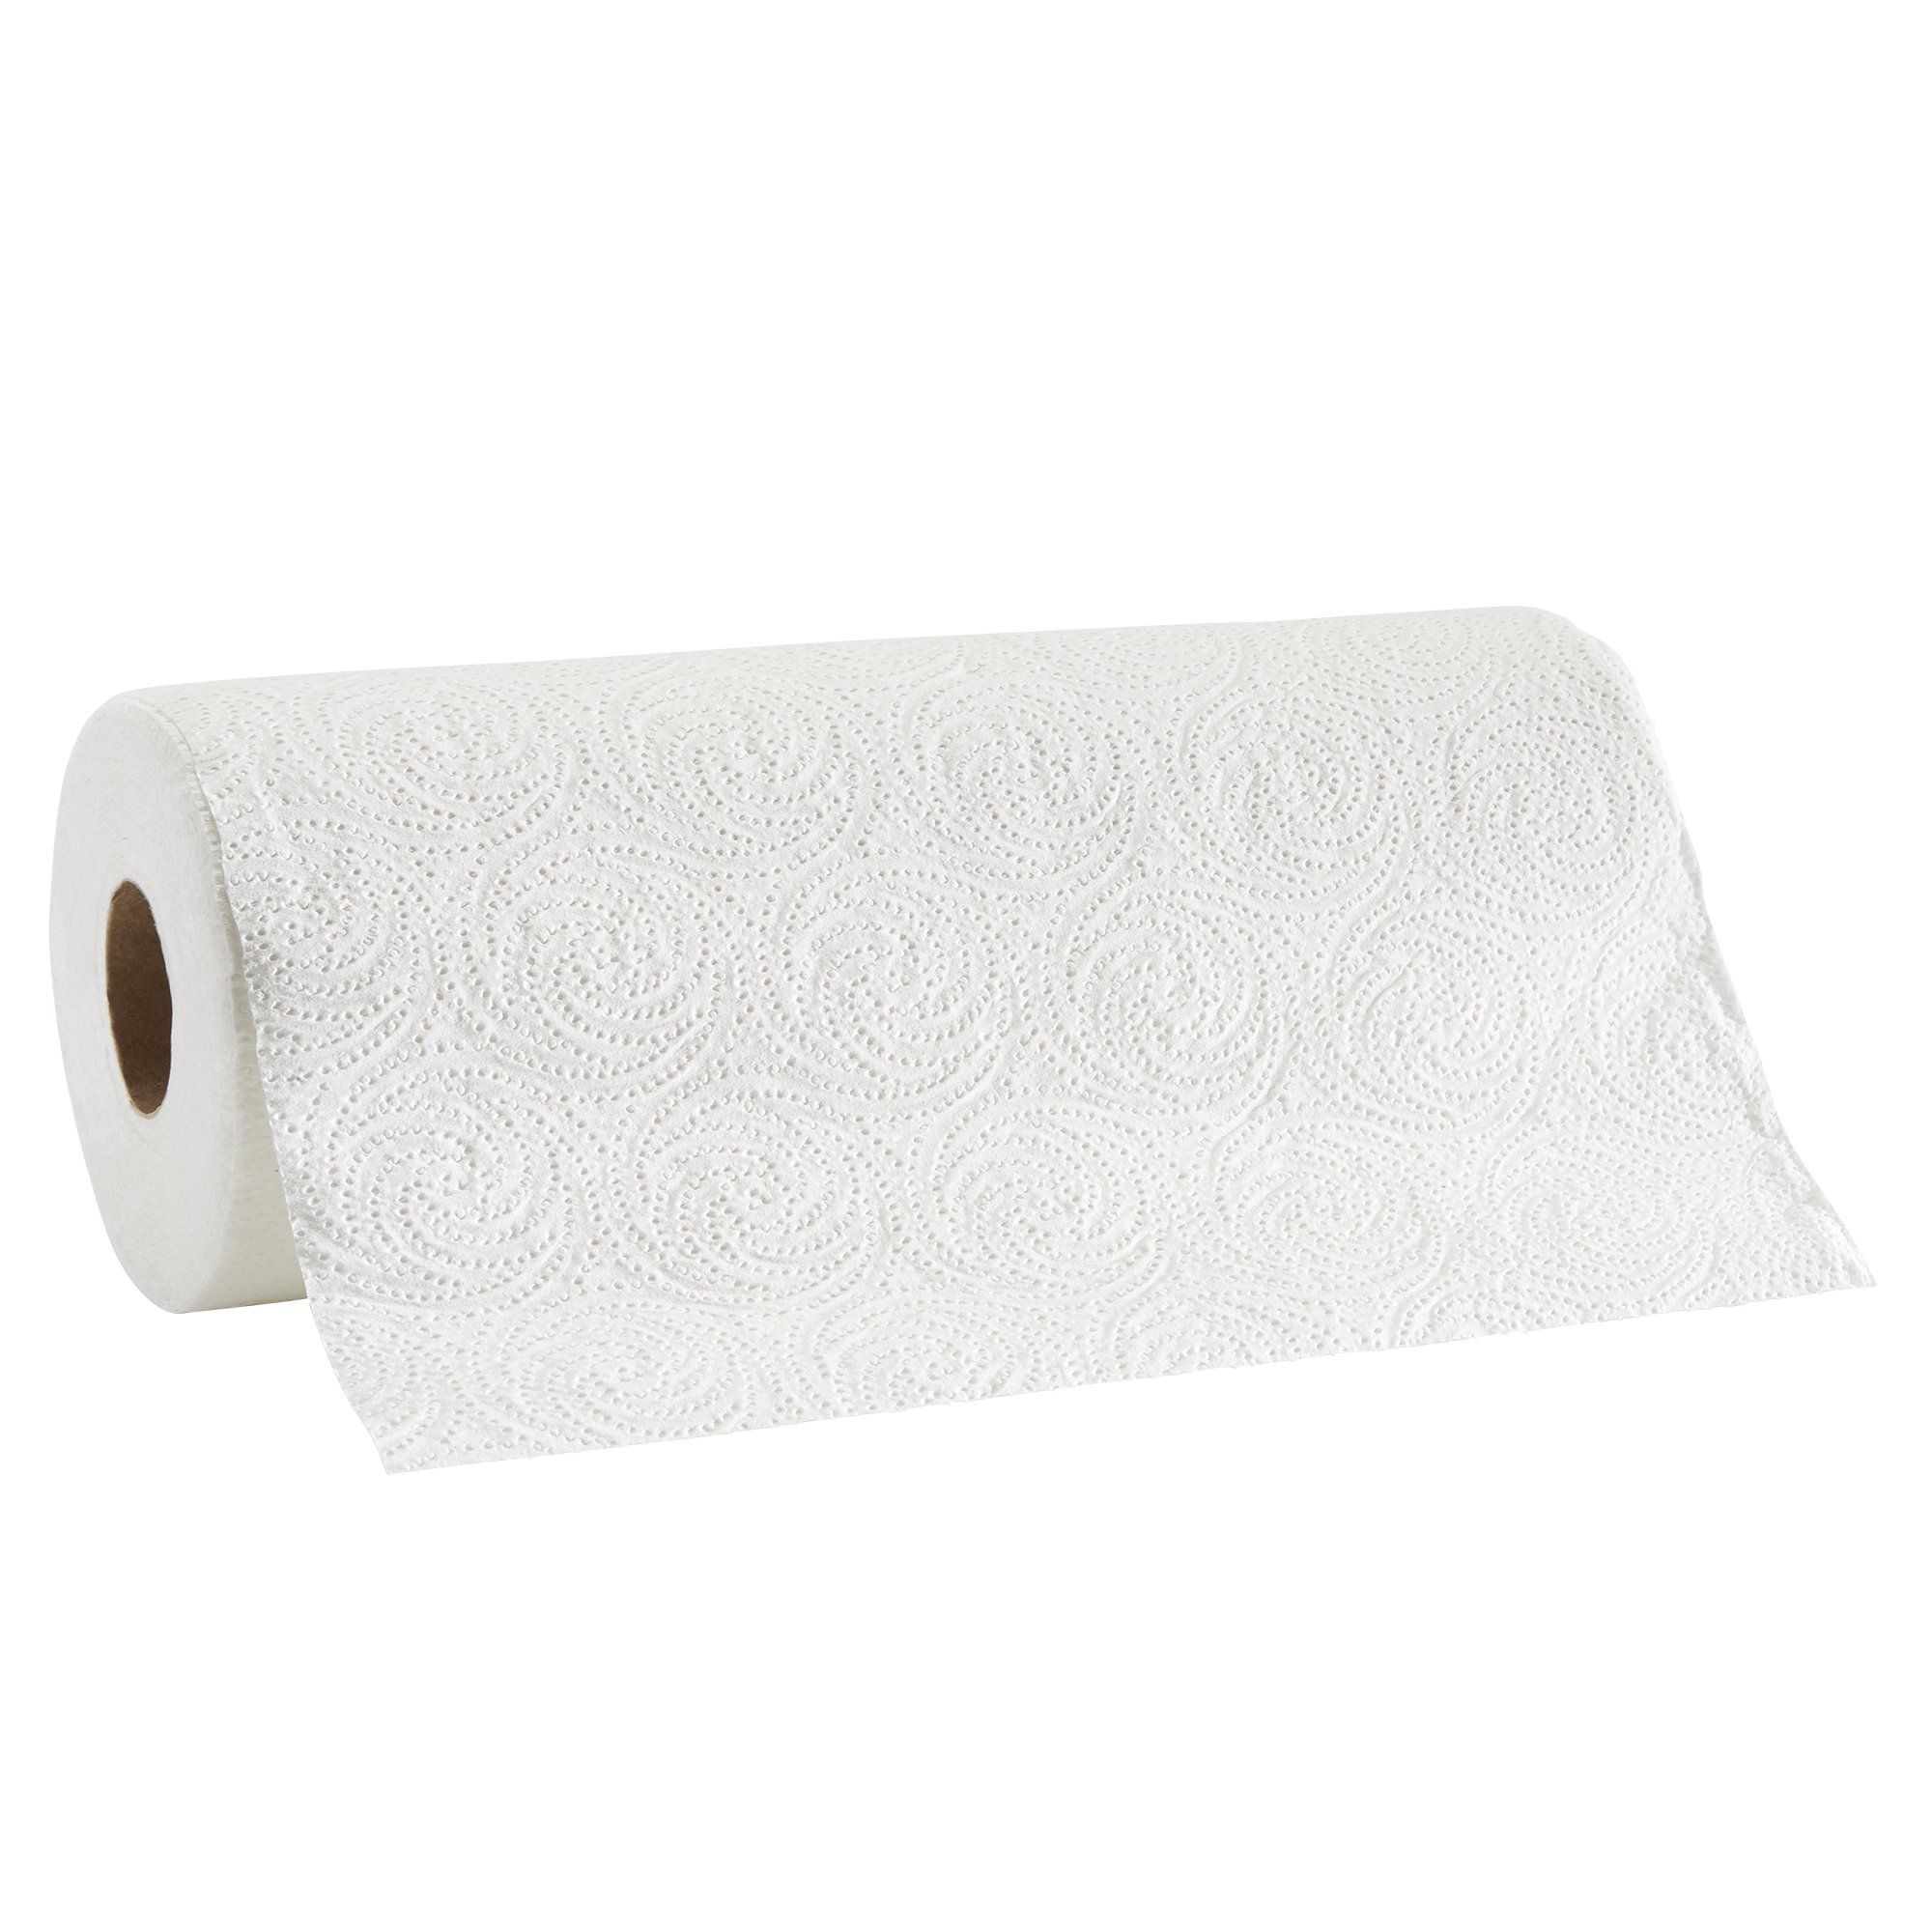 Pacific Blue Select 2ply Perforated Roll Paper Towels Previously Branded Preference By Gp Pro Georgi Pacific Blue Vertical Paper Towel Holder Best Paper Towels